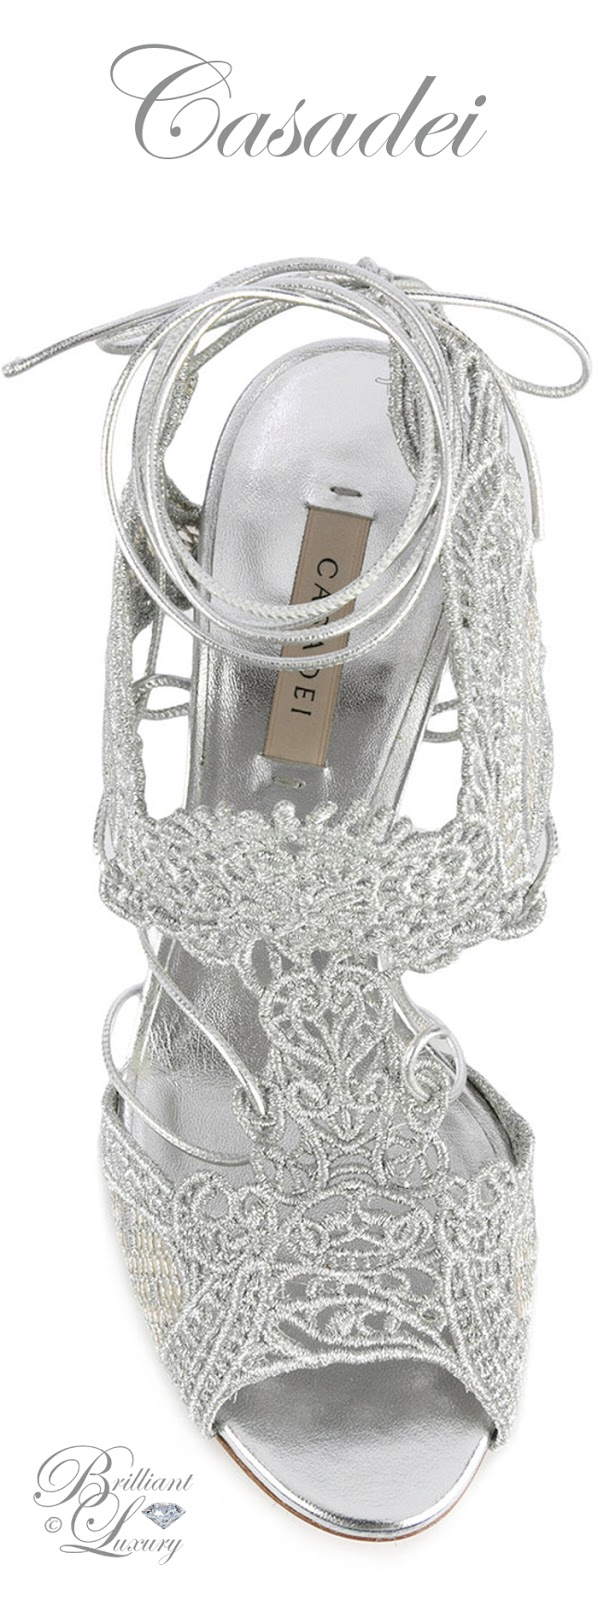 Brilliant Luxury ♦ Casadei Lace Sandals